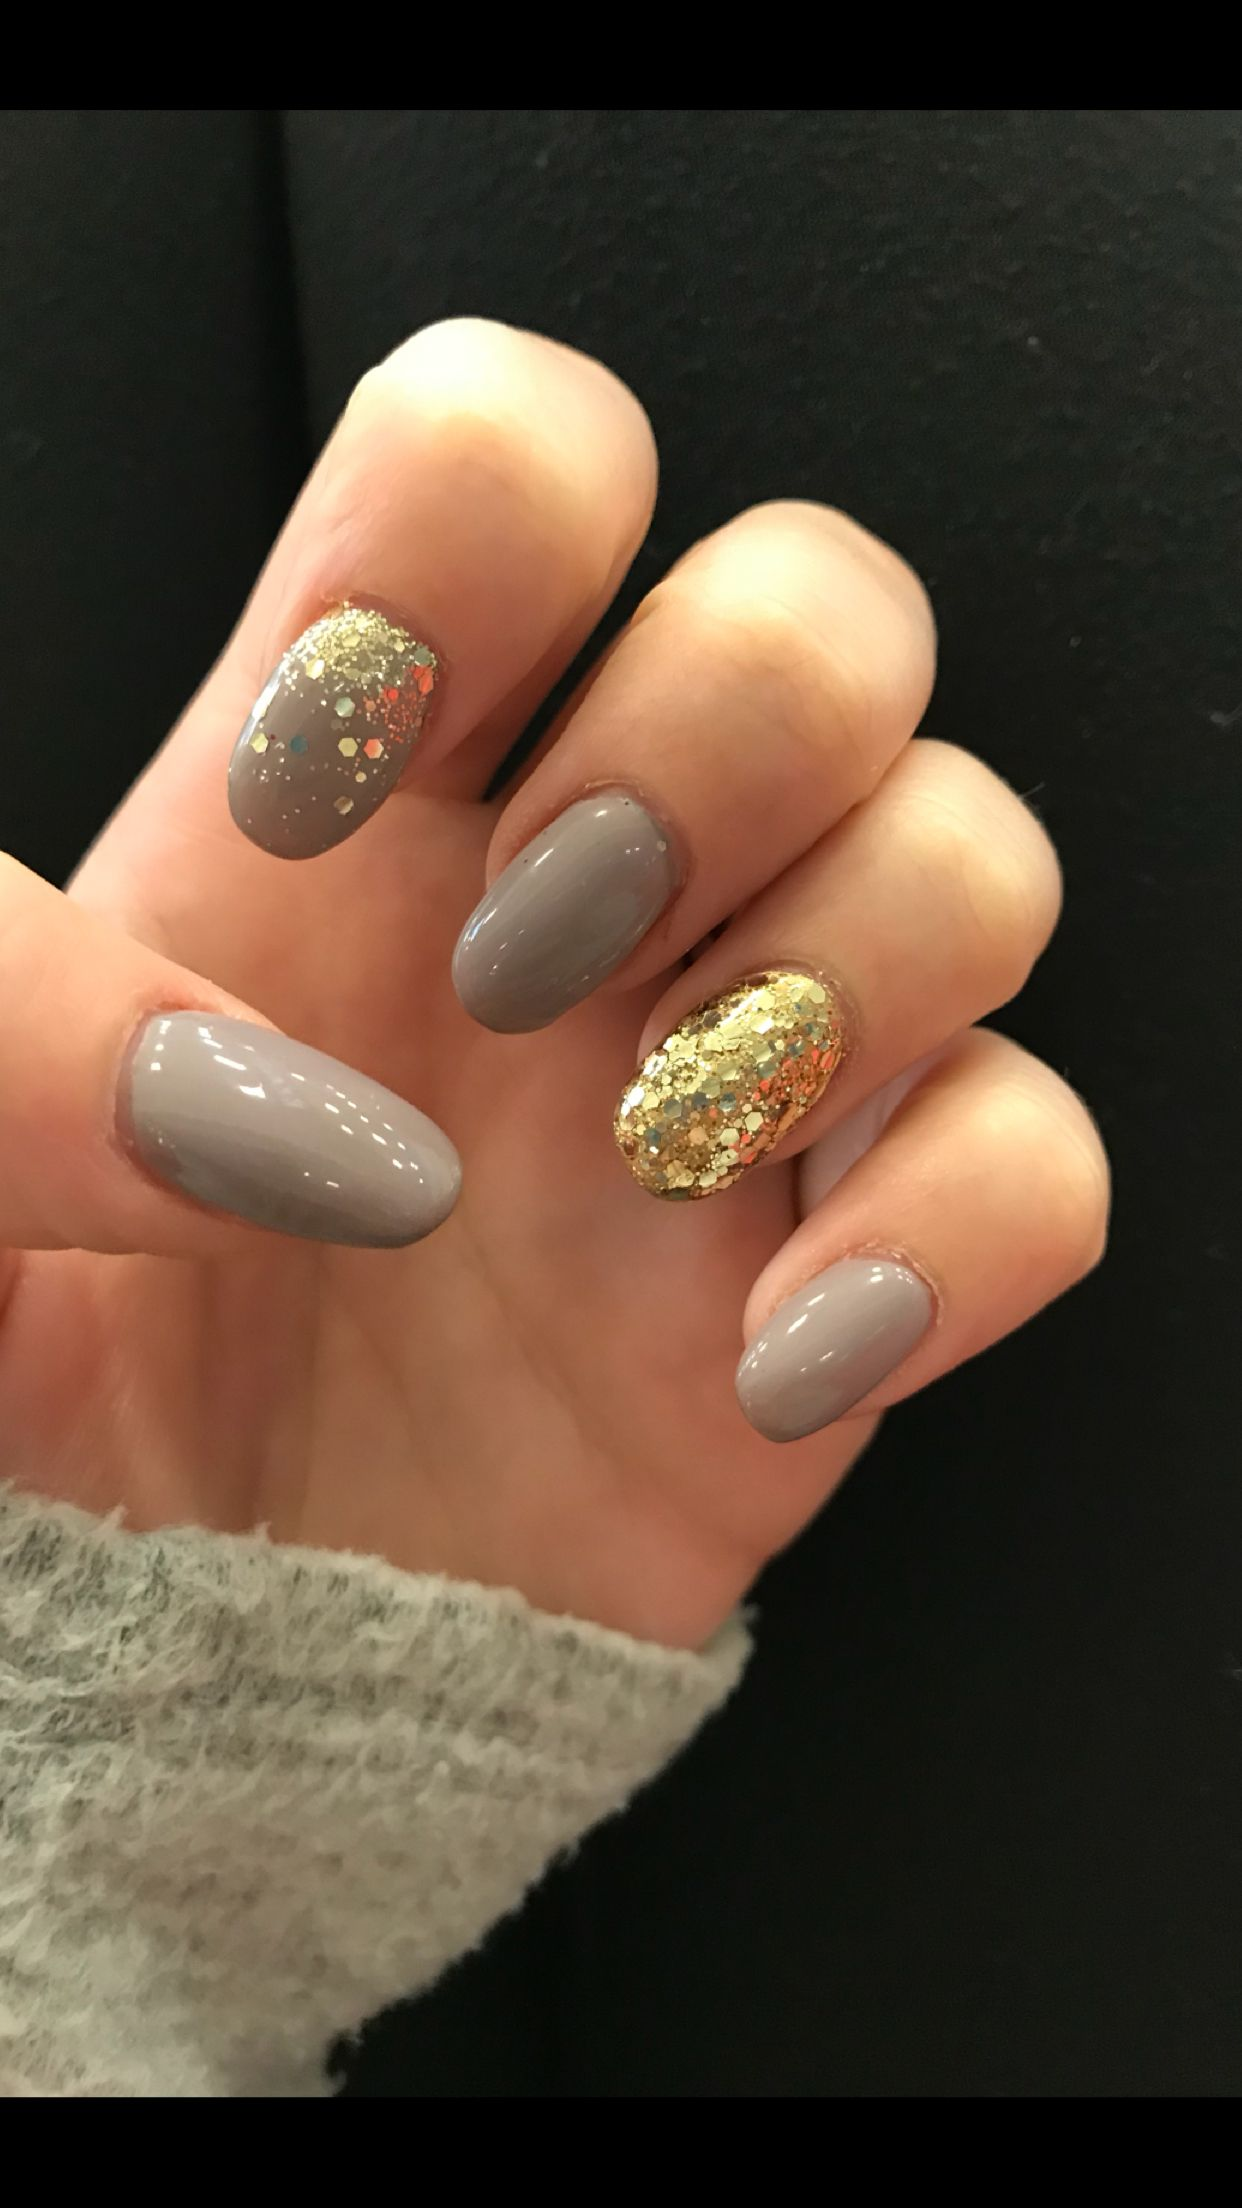 Glitter acrylic nails with fade | Fun Nail Designs | Pinterest ...